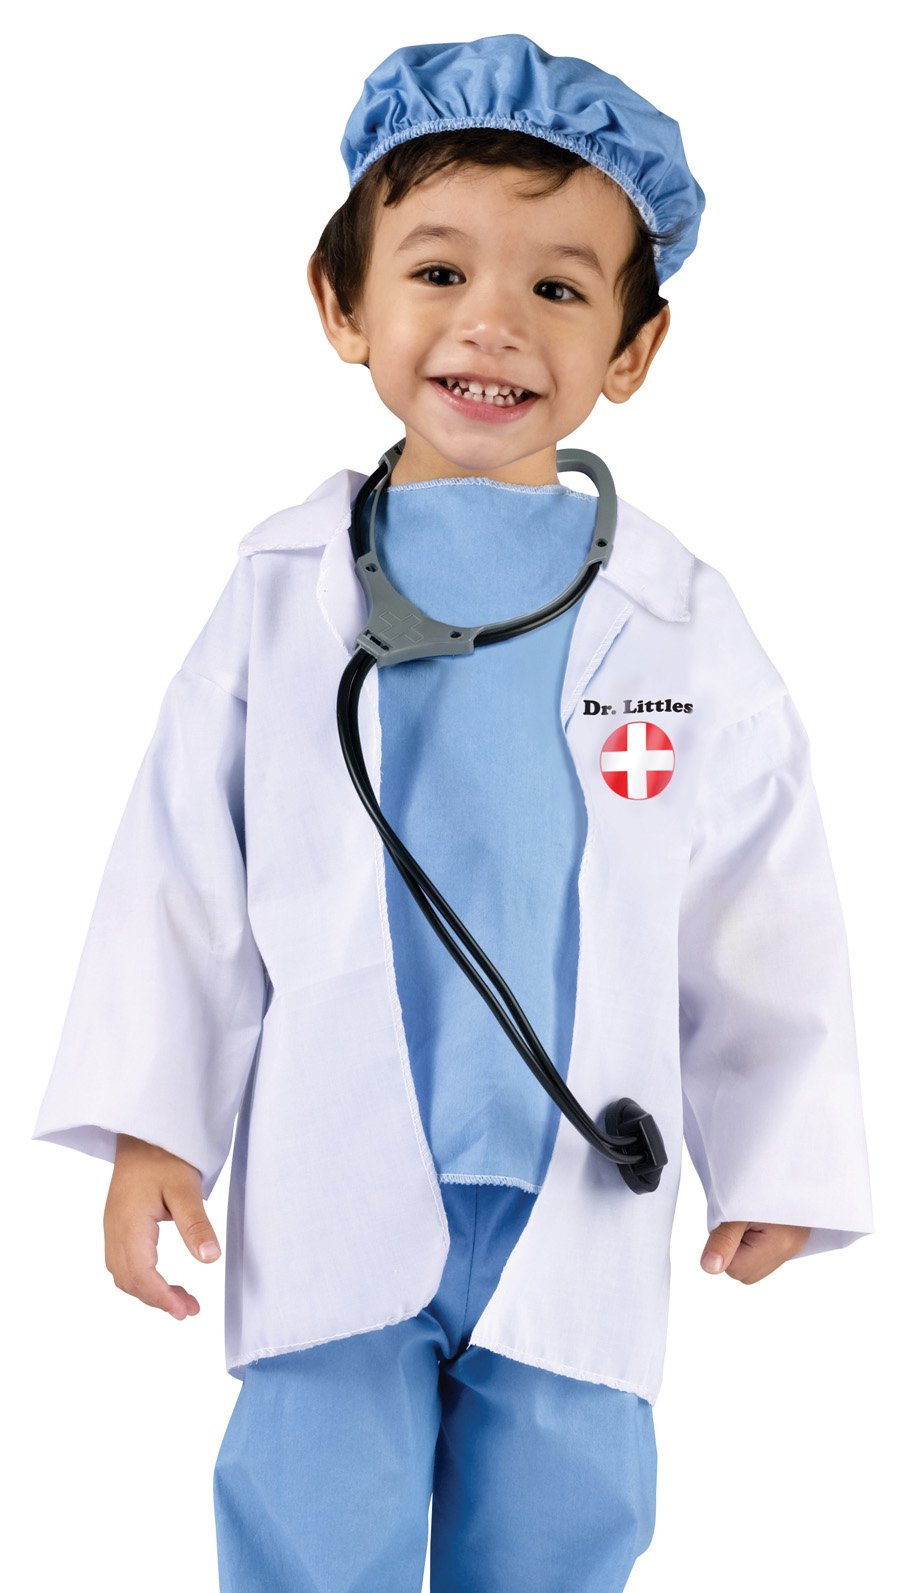 Fun World Costumes Baby's Doctor Toddler Costume, Blue/White, Large(3T-4T)